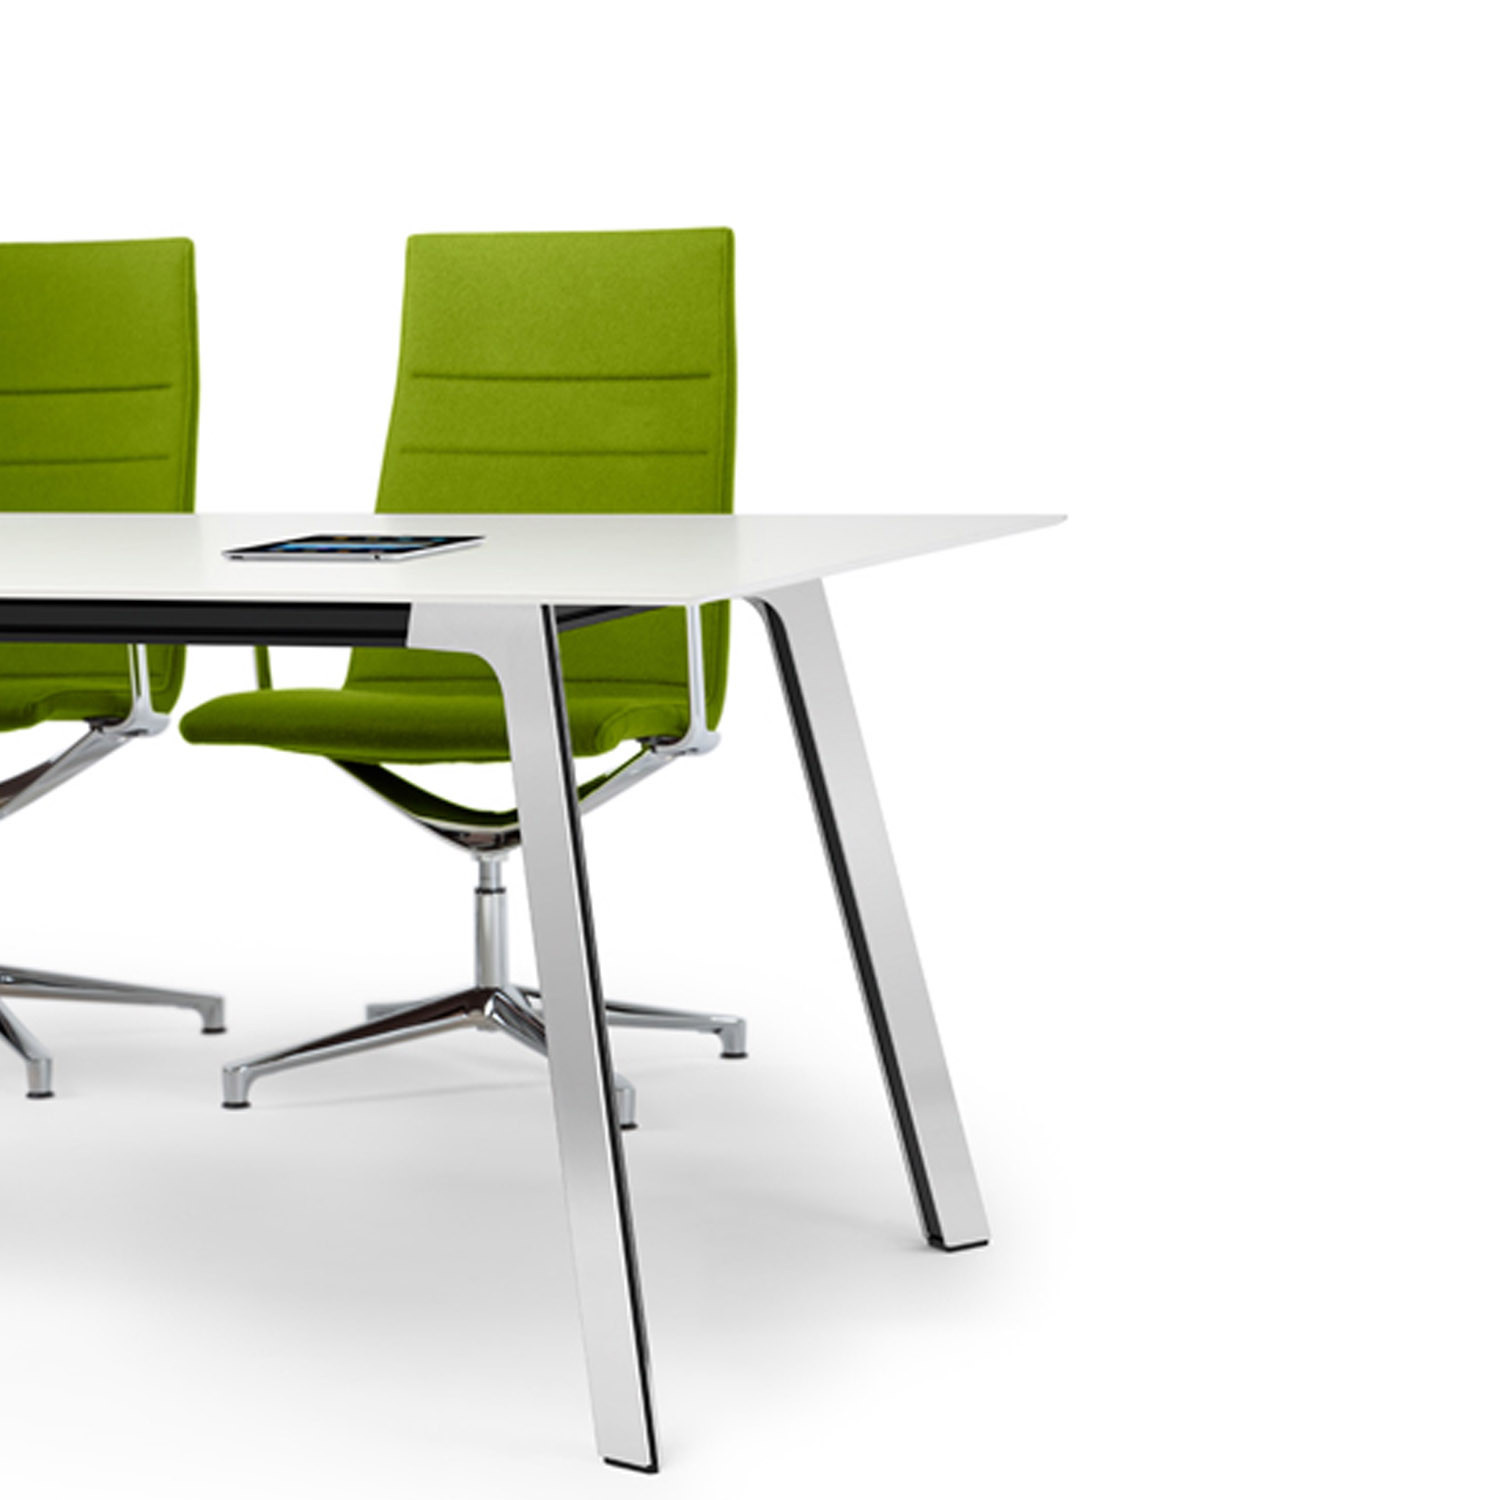 Groove Office Tables from Norbert Geelen